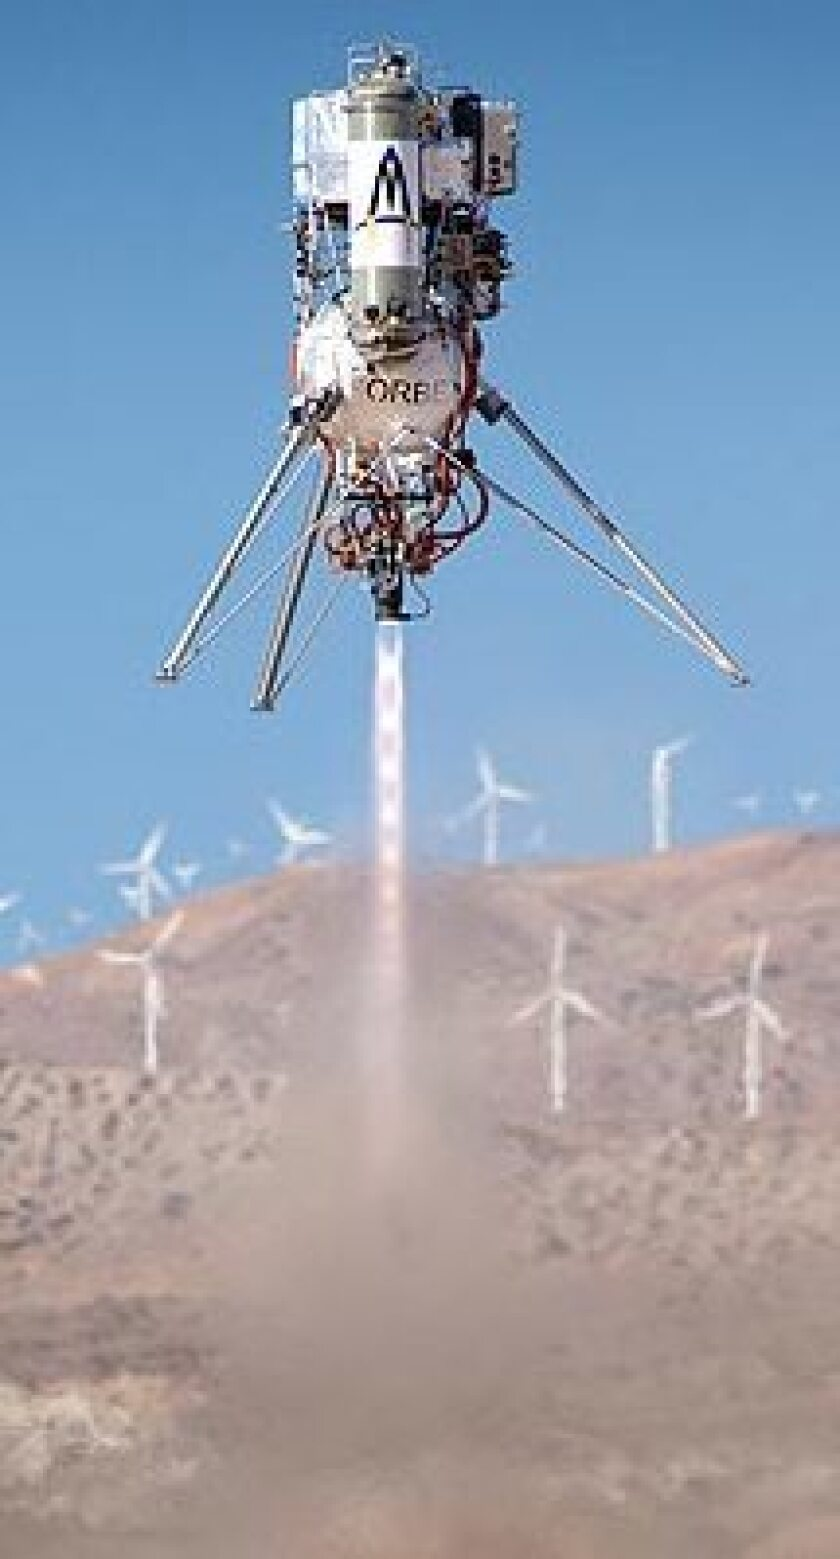 The Masten Space Systems rocket lifts off from the launchpad Friday. The effort appeared to move Masten into the lead of the $2-million Northrop Grumman Lunar Landing Challenge.